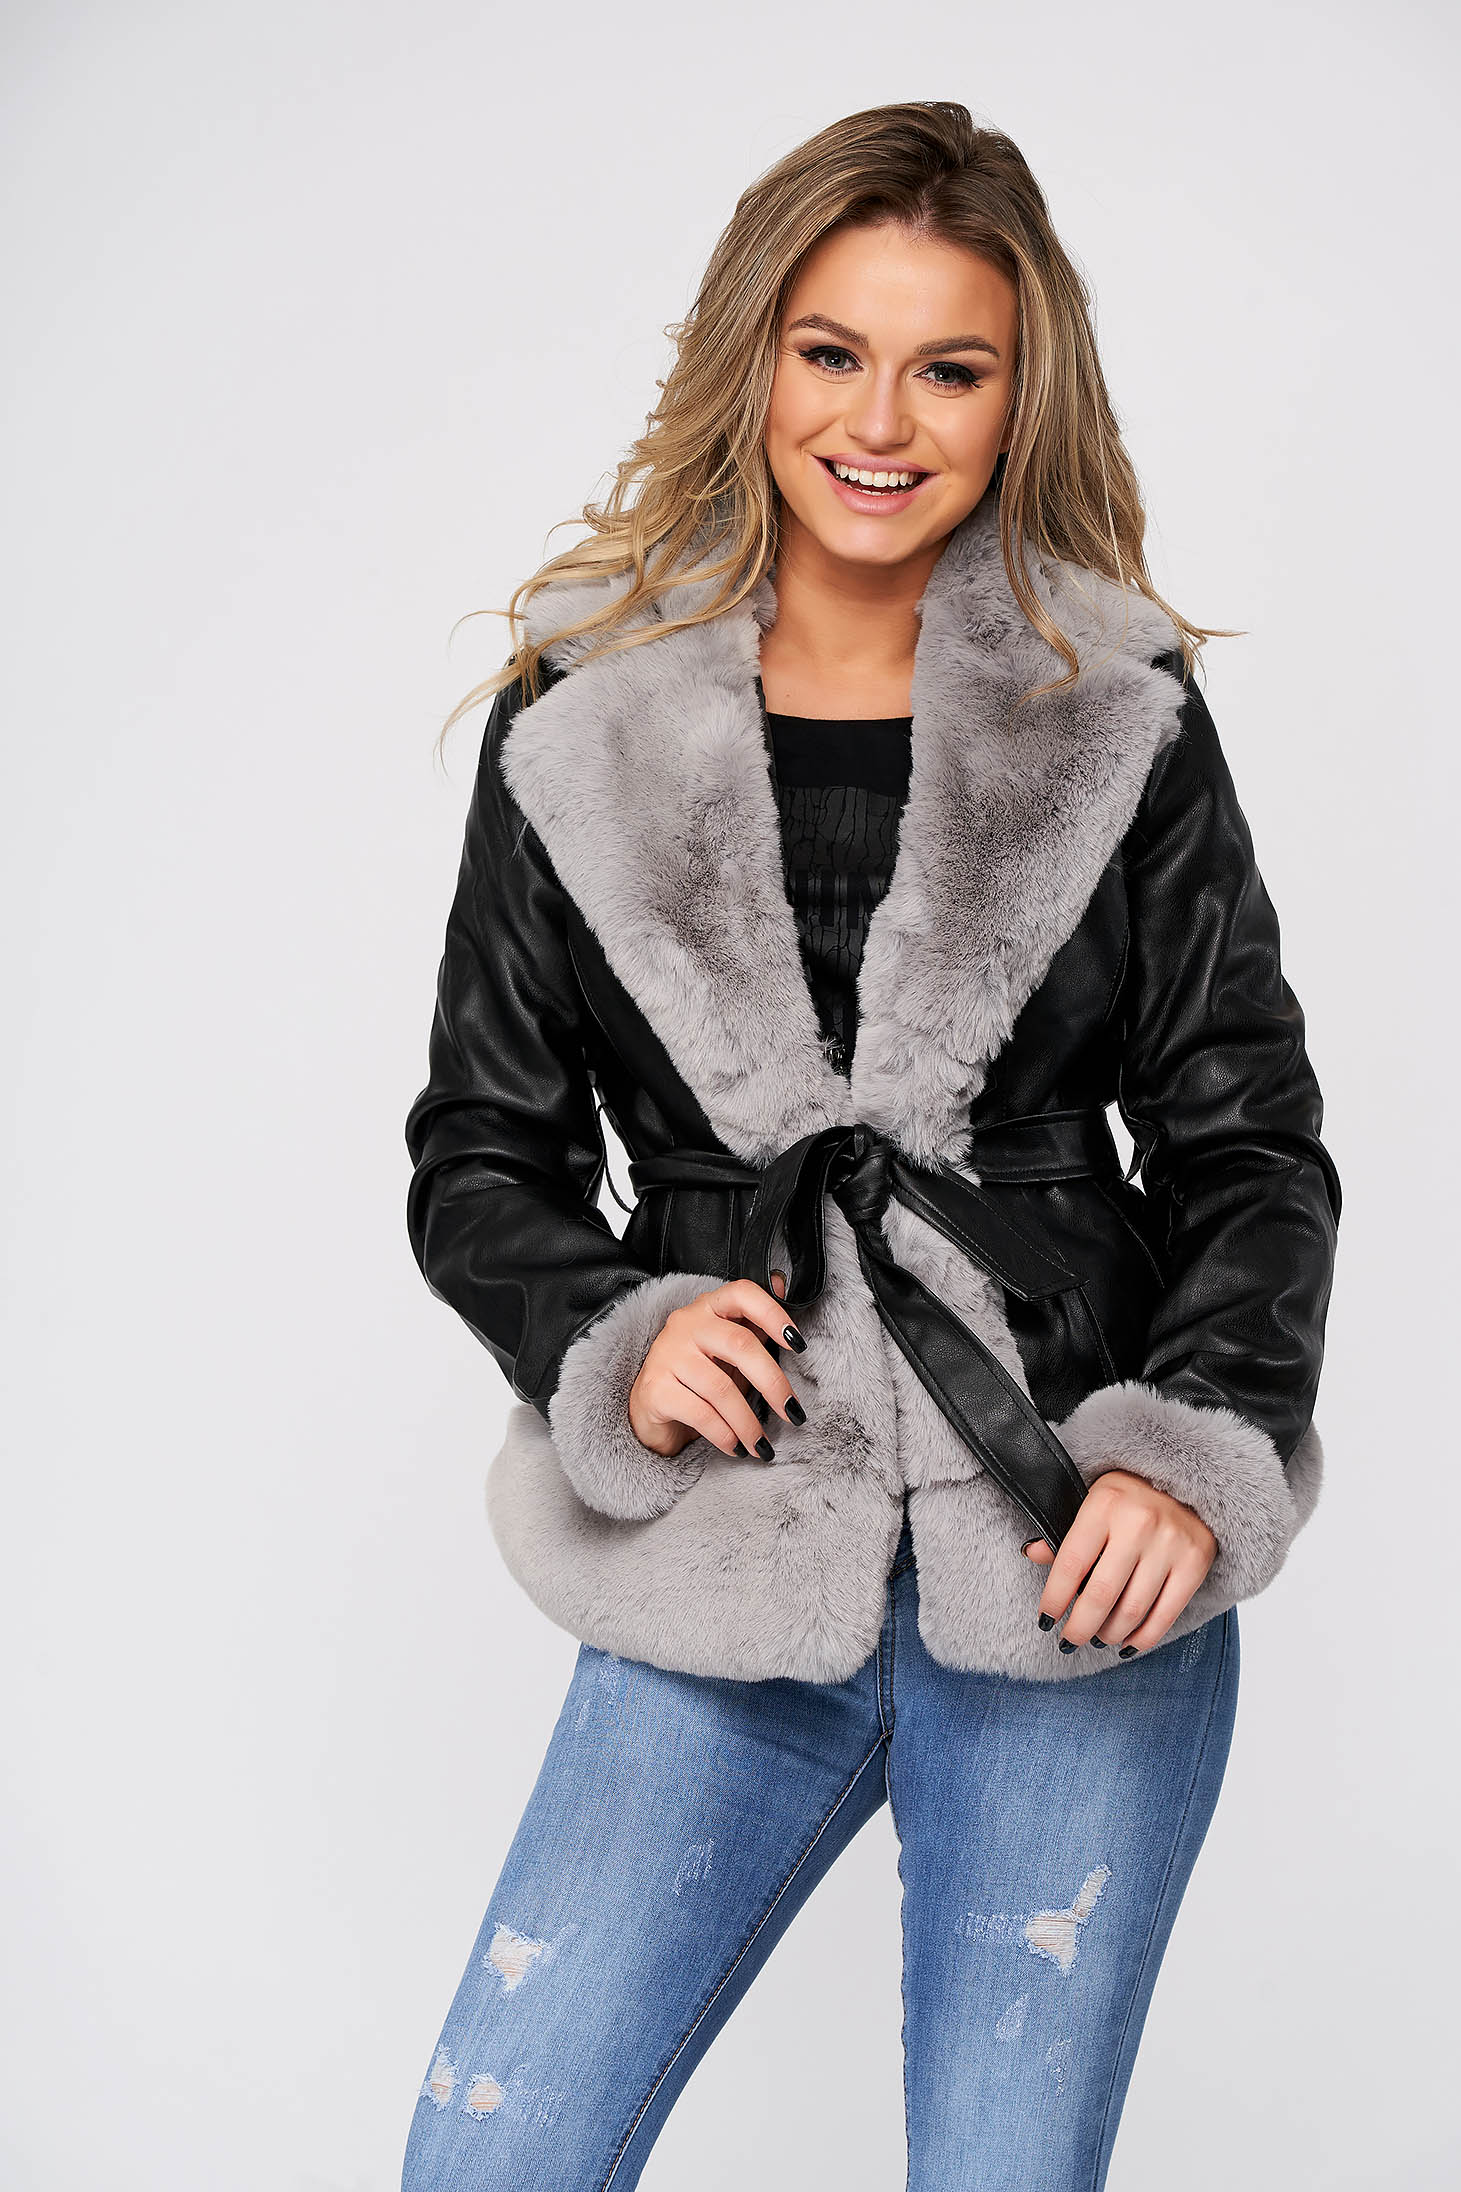 Grey jacket short cut from ecological leather with faux fur accessory